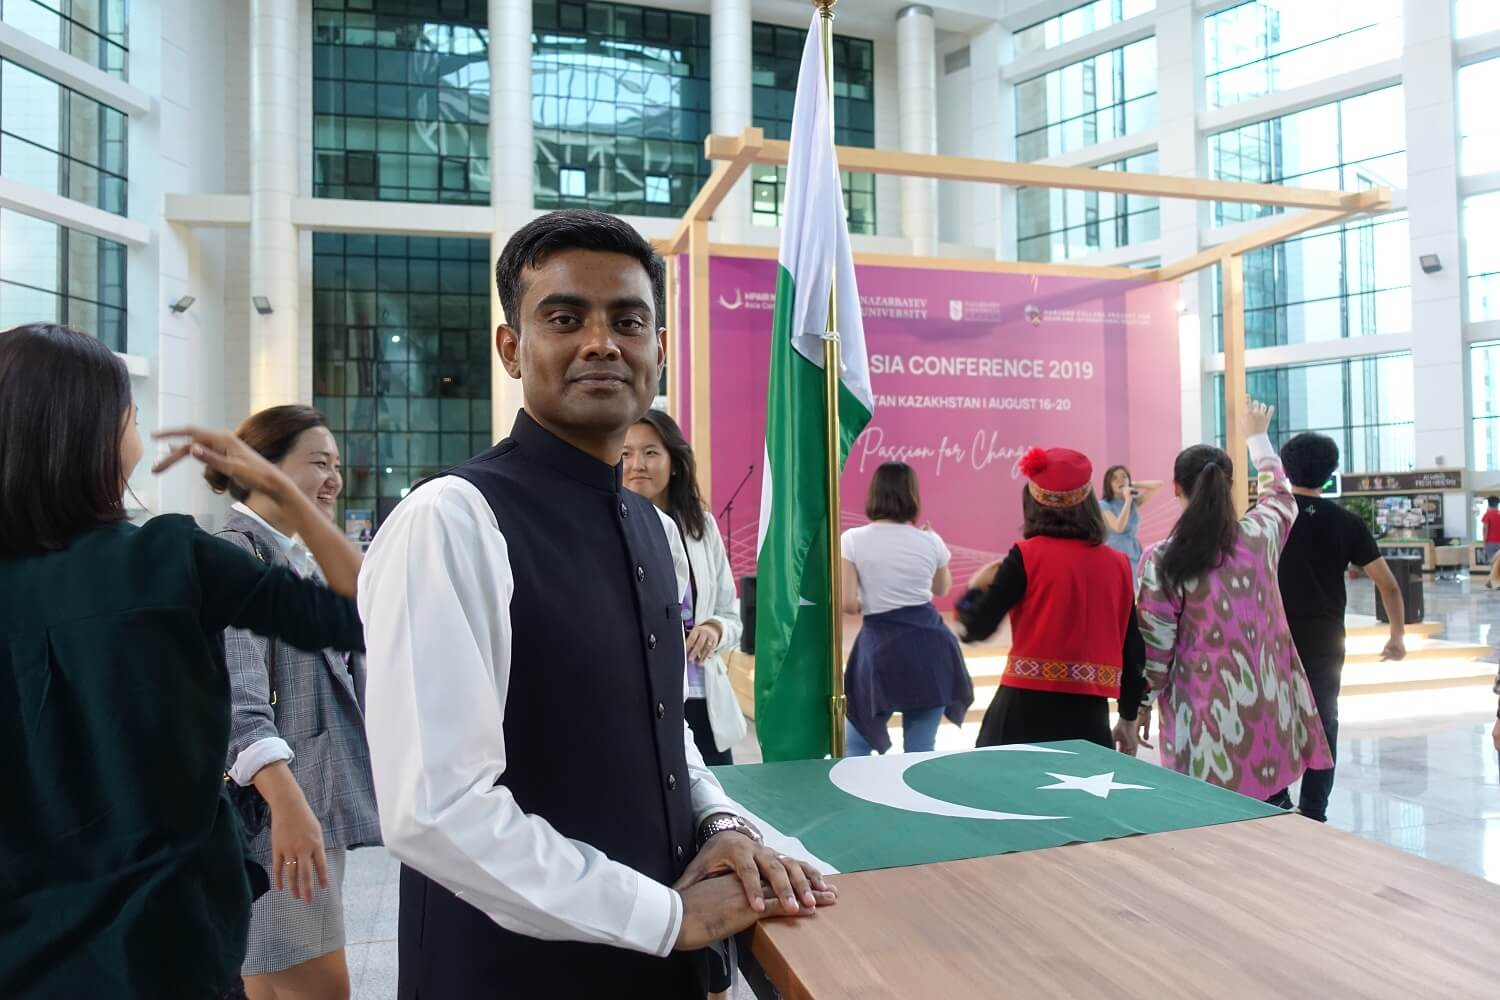 'Bigger picture': Why this Pakistani chose to study political science in Kazakhstan